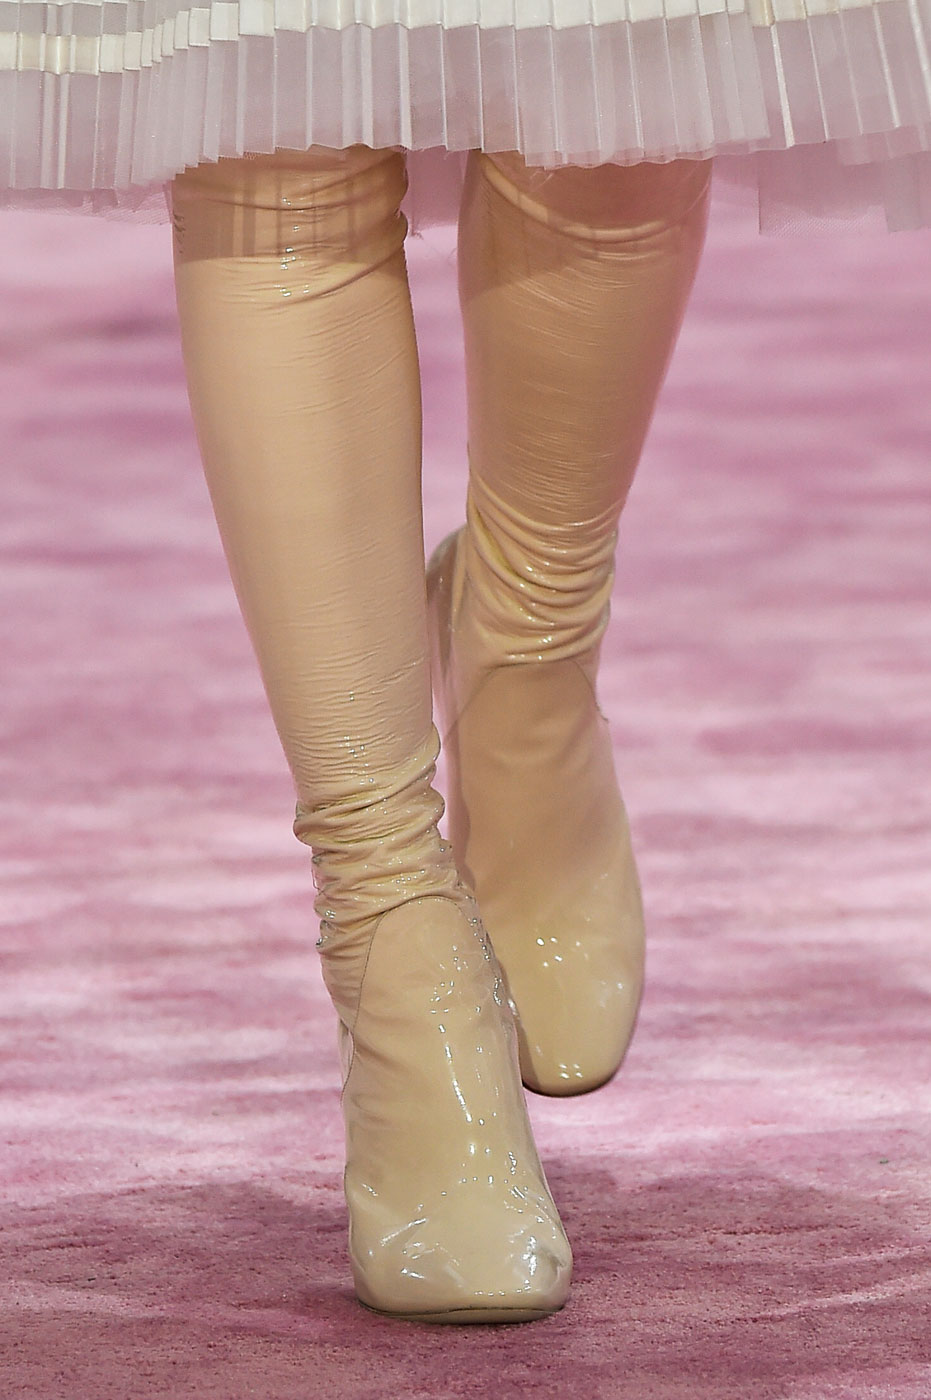 Christian-Dior-fashion-runway-show-close-ups-haute-couture-paris-spring-summer-2015-the-impression-143